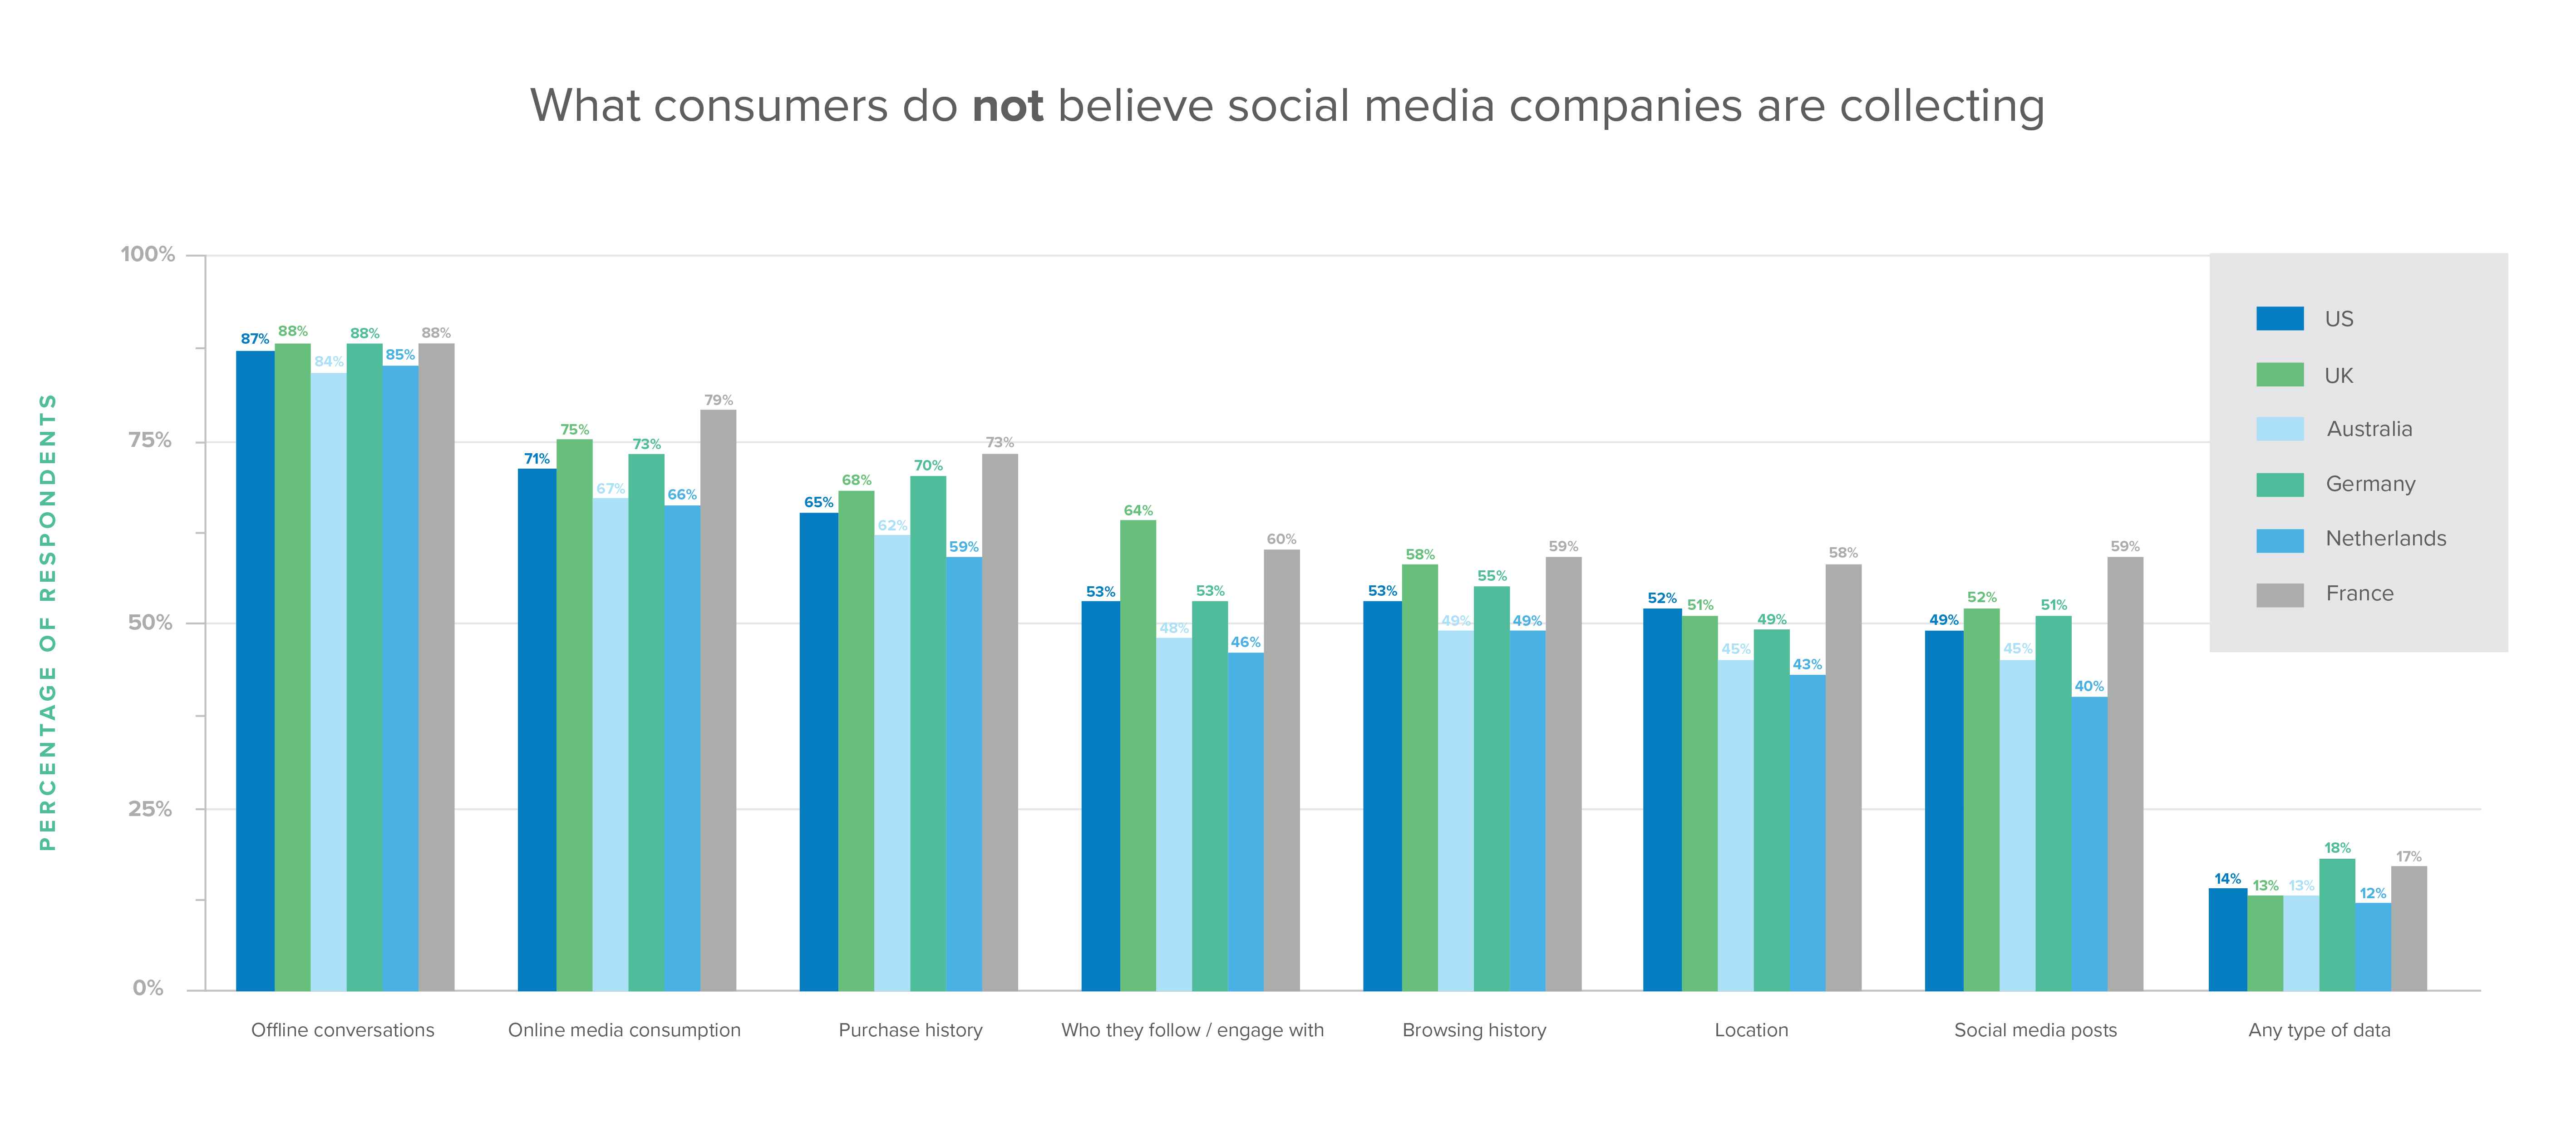 What consumers do not believe social media companies are collecting.